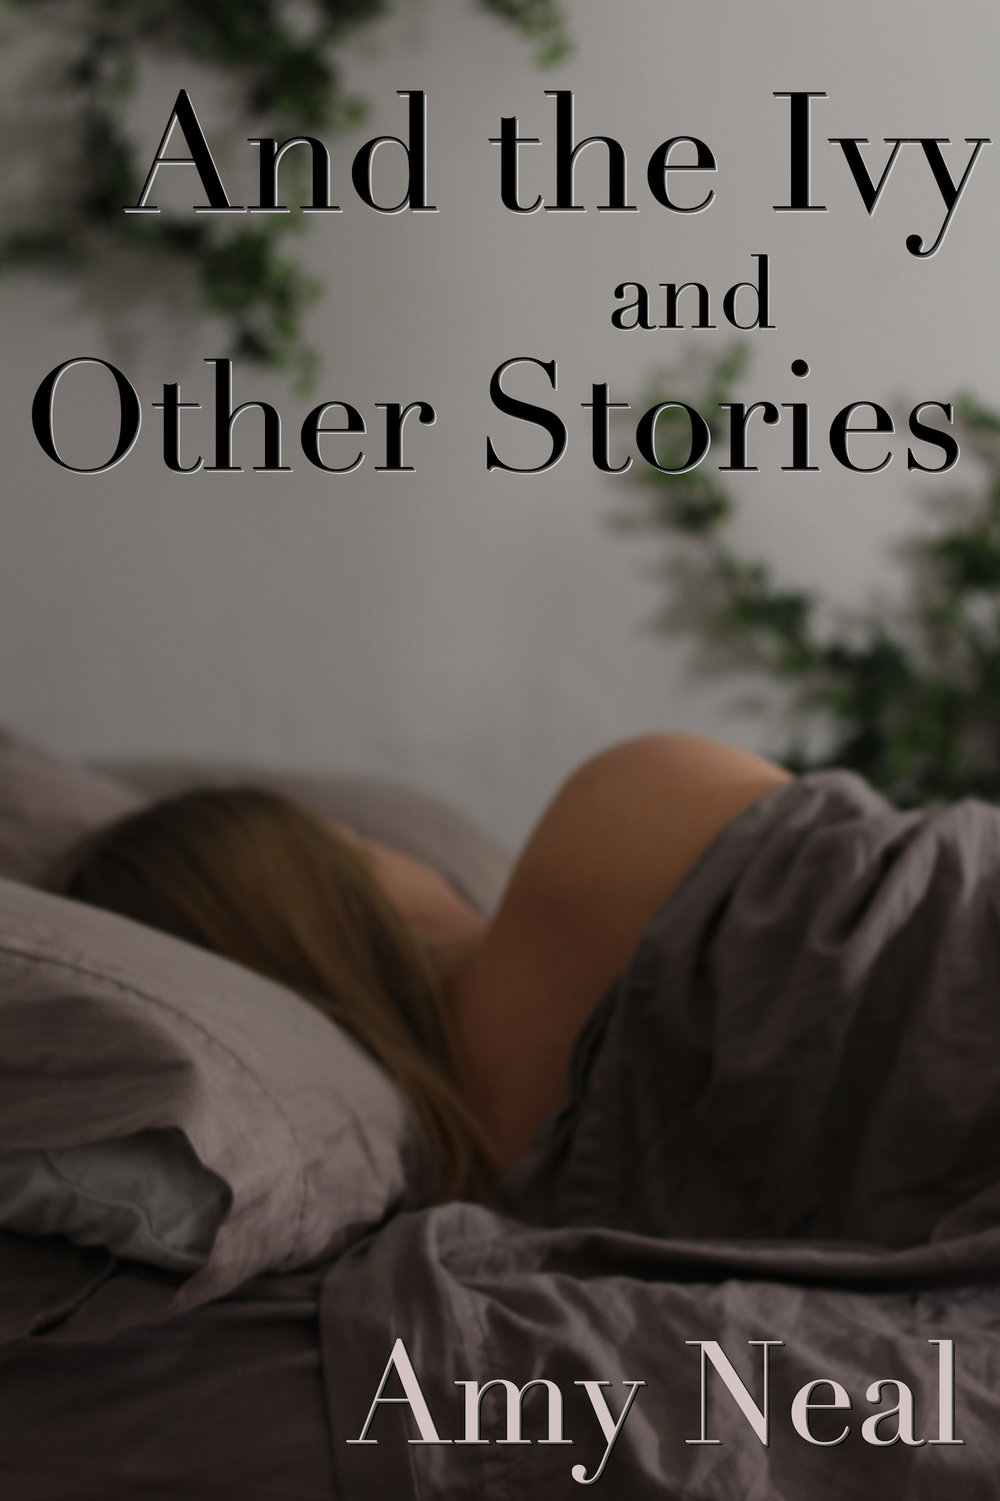 And the Ivy and Other Stories - A short collection of weird fiction.